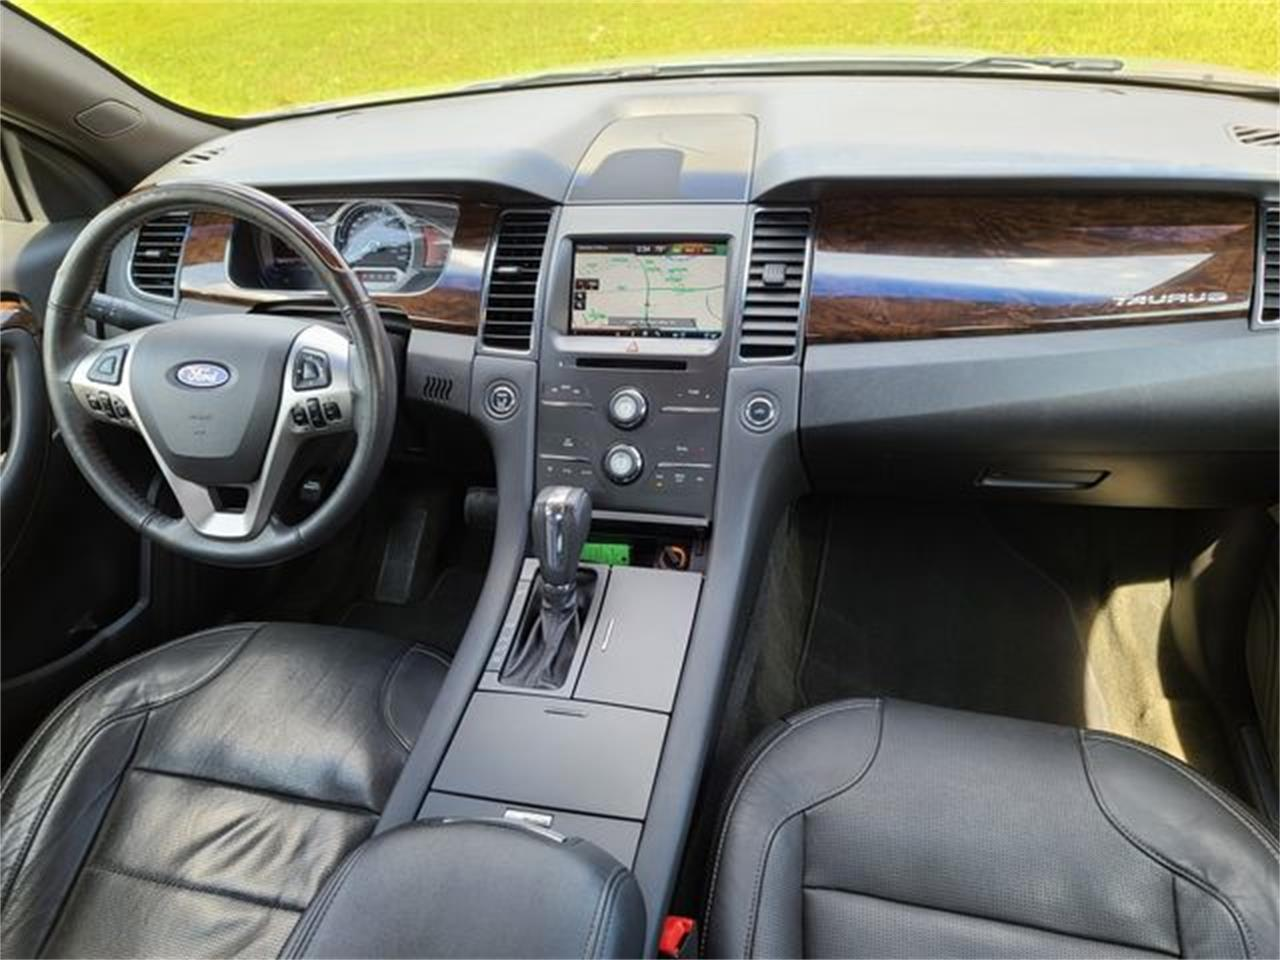 2014 Ford Taurus (CC-1384990) for sale in Hope Mills, North Carolina